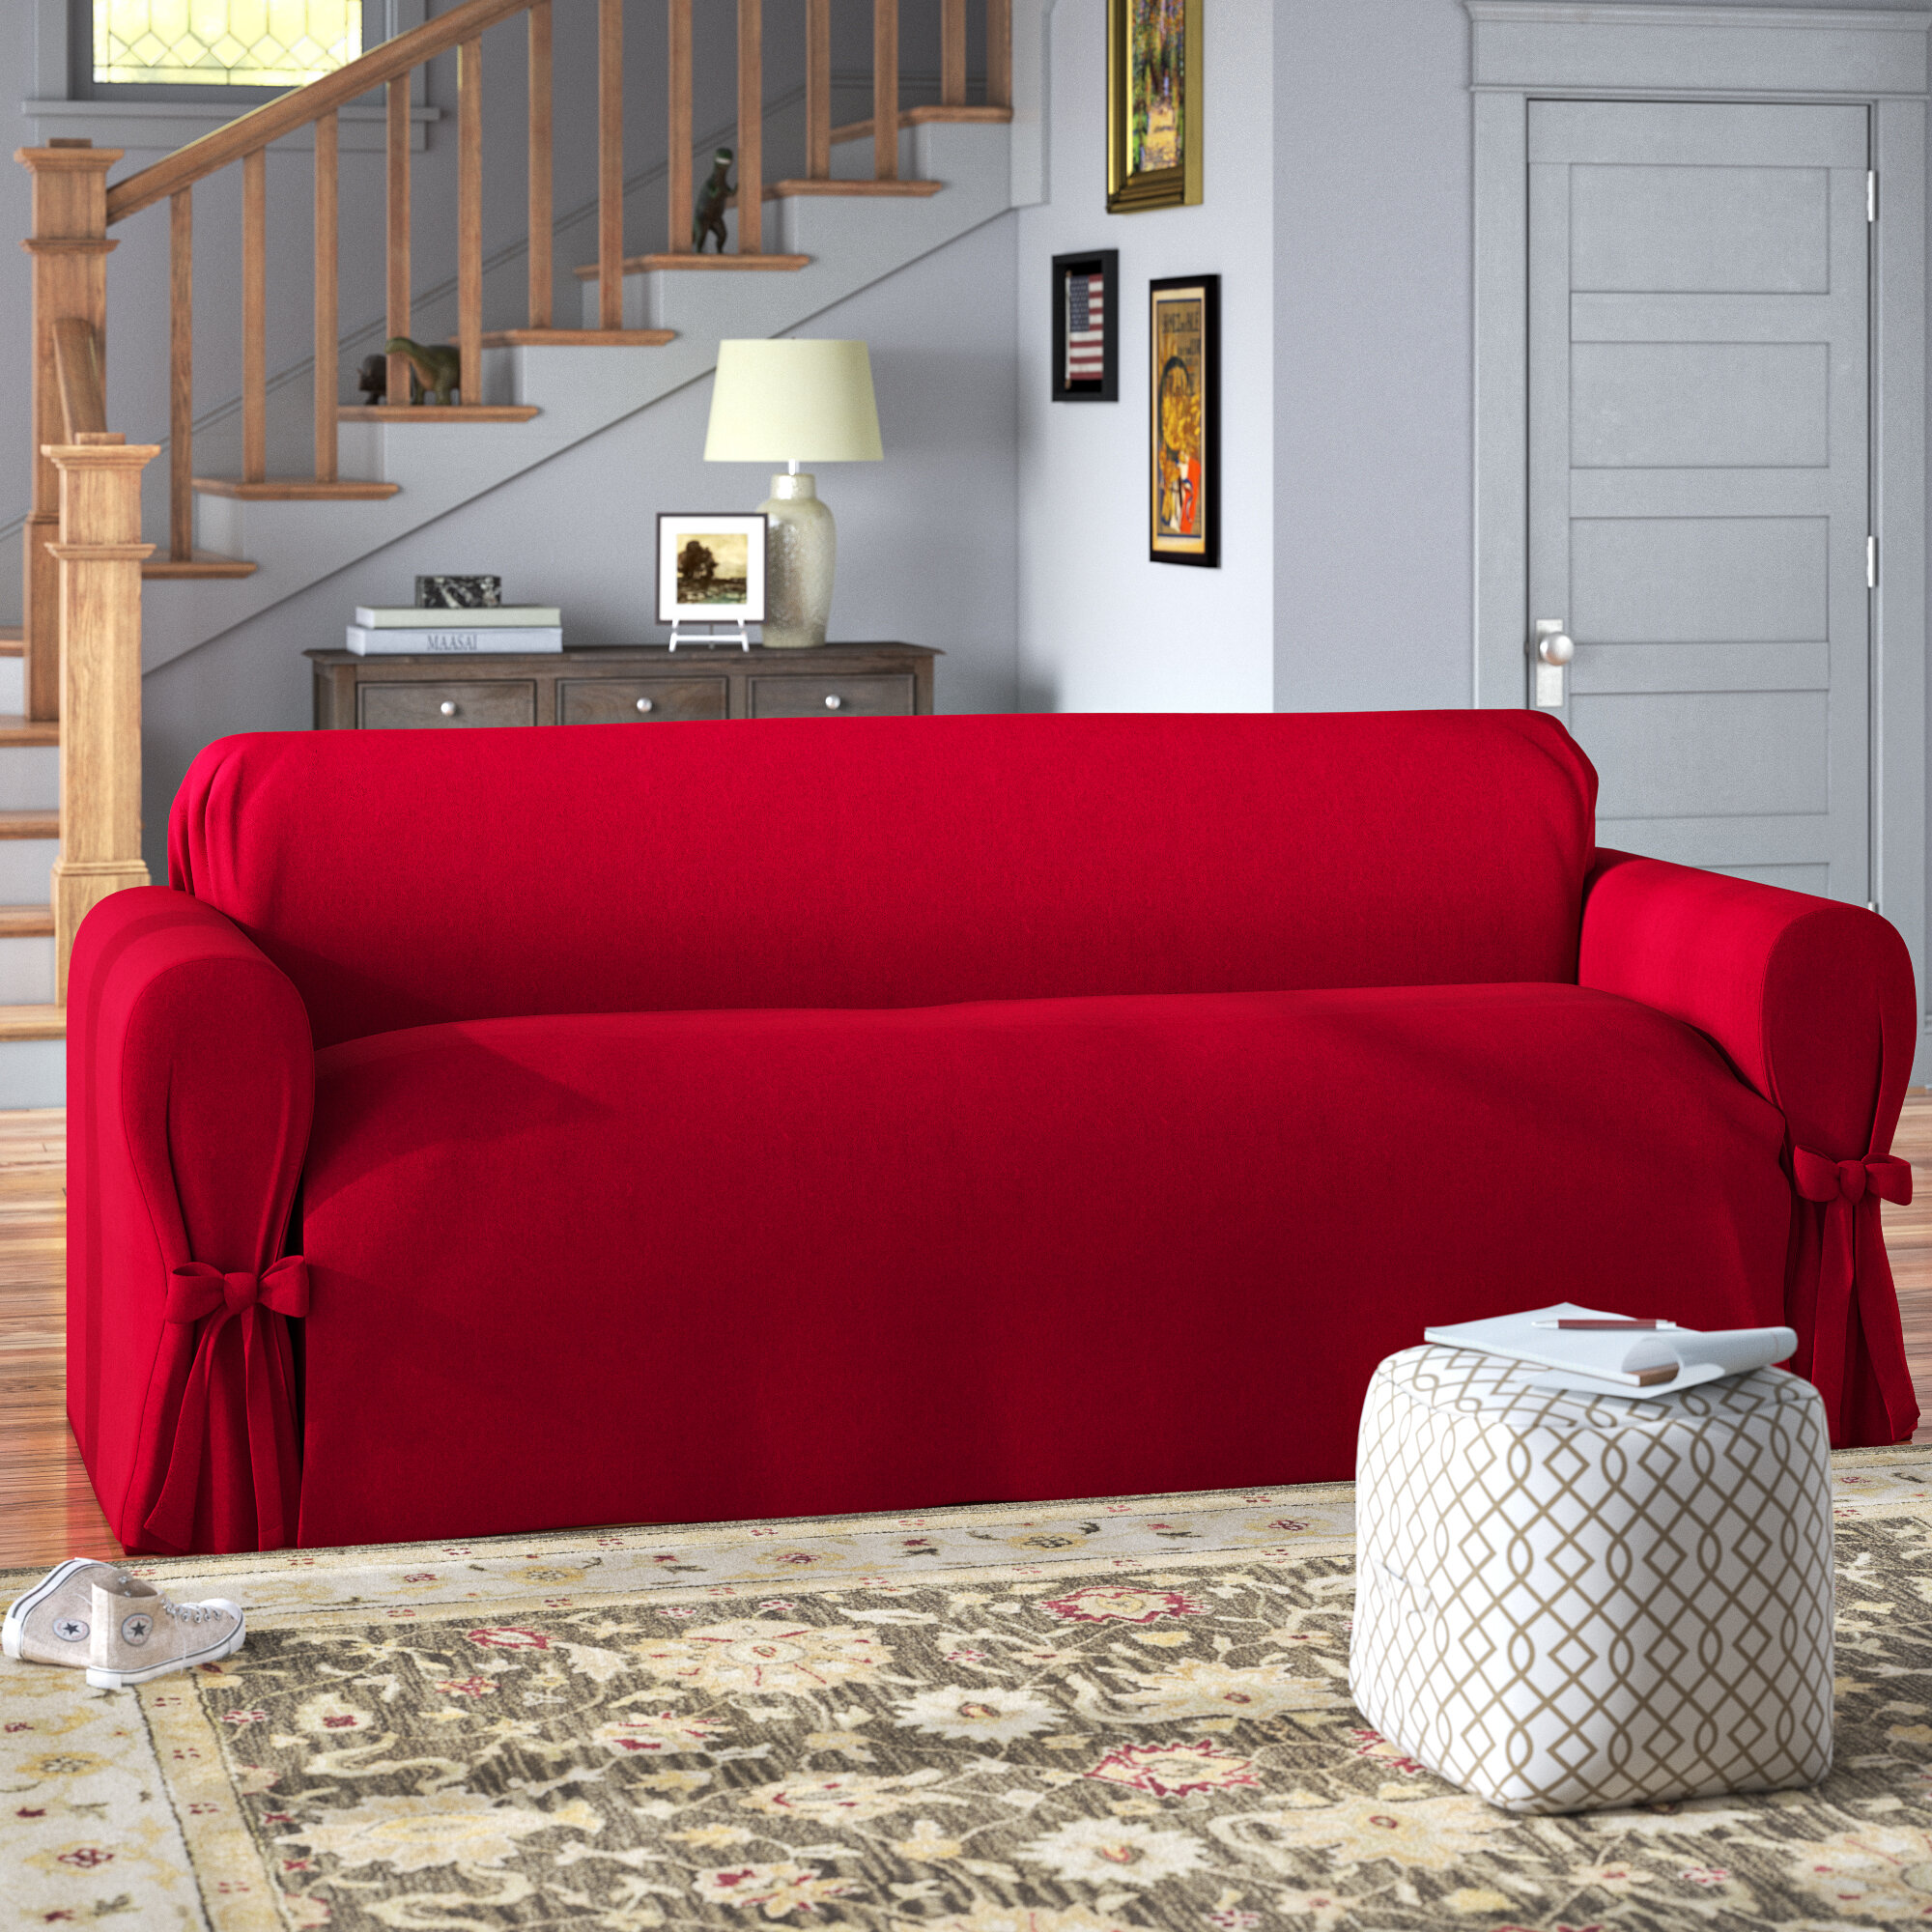 Unmade Small Couch